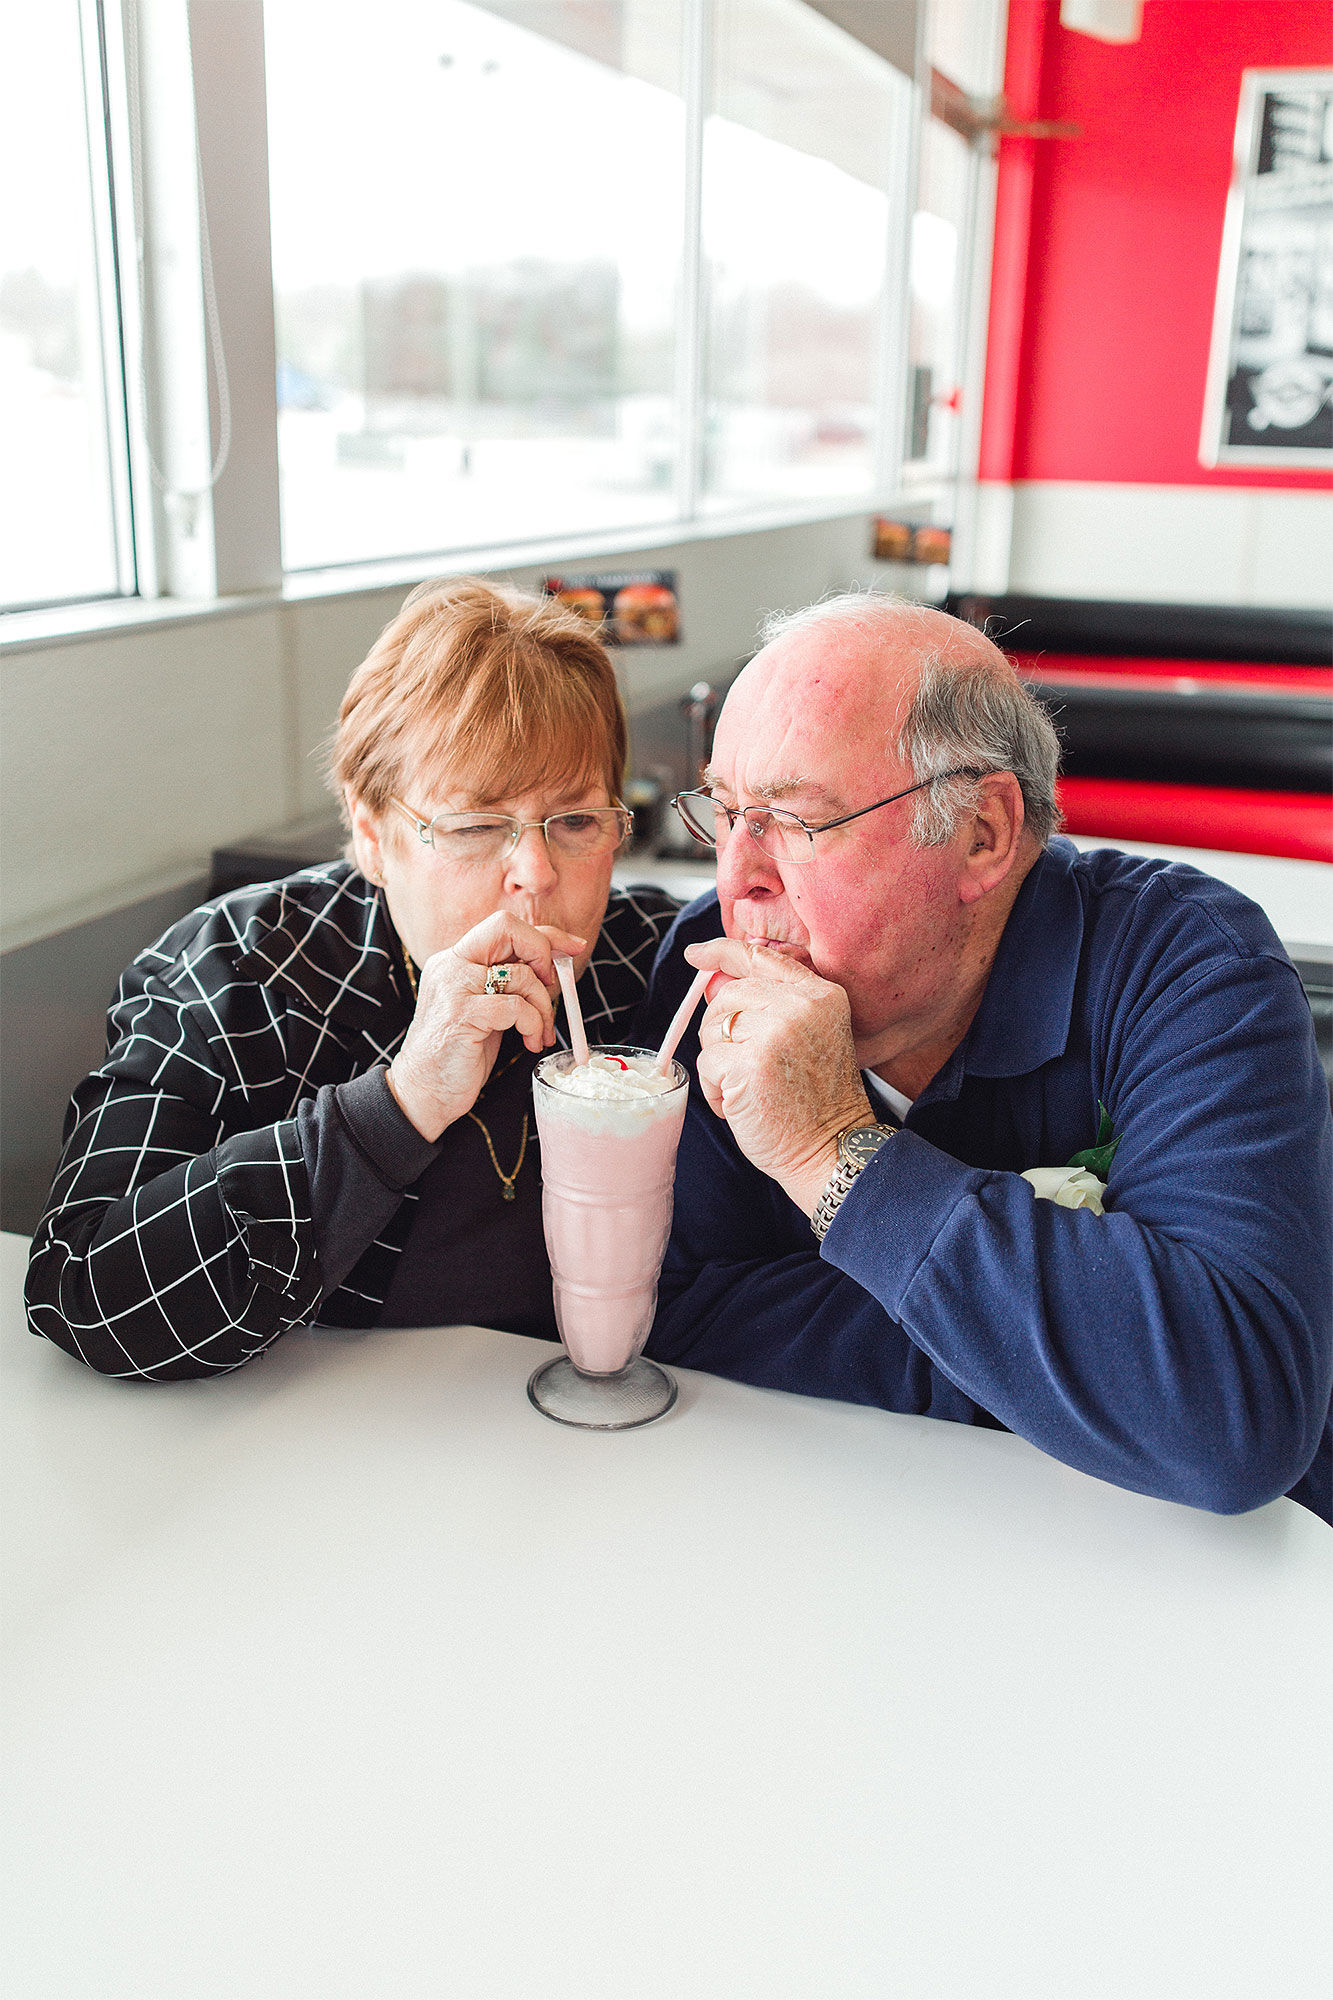 Couple Recreates First Date to Celebrate 55th Wedding Anniversary: 'They Giggled the Entire Time'